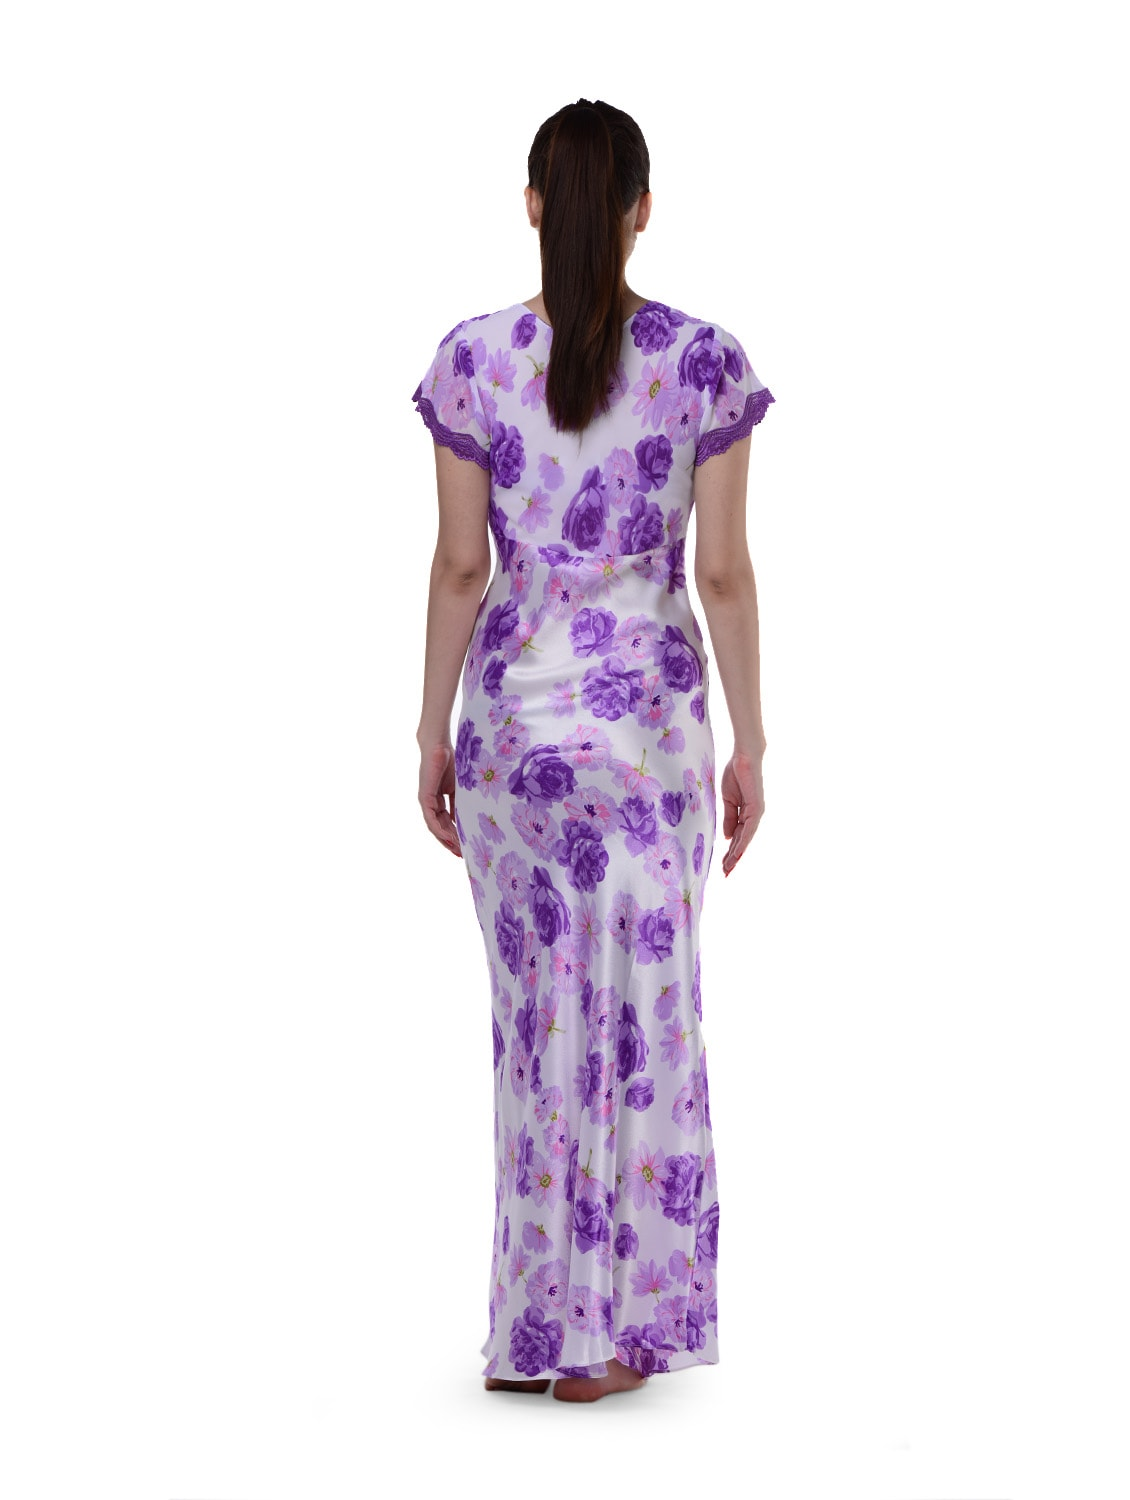 dd87e54deef Buy Lavender Long Nighty for Women from Privatelives for ₹999 at 0% off